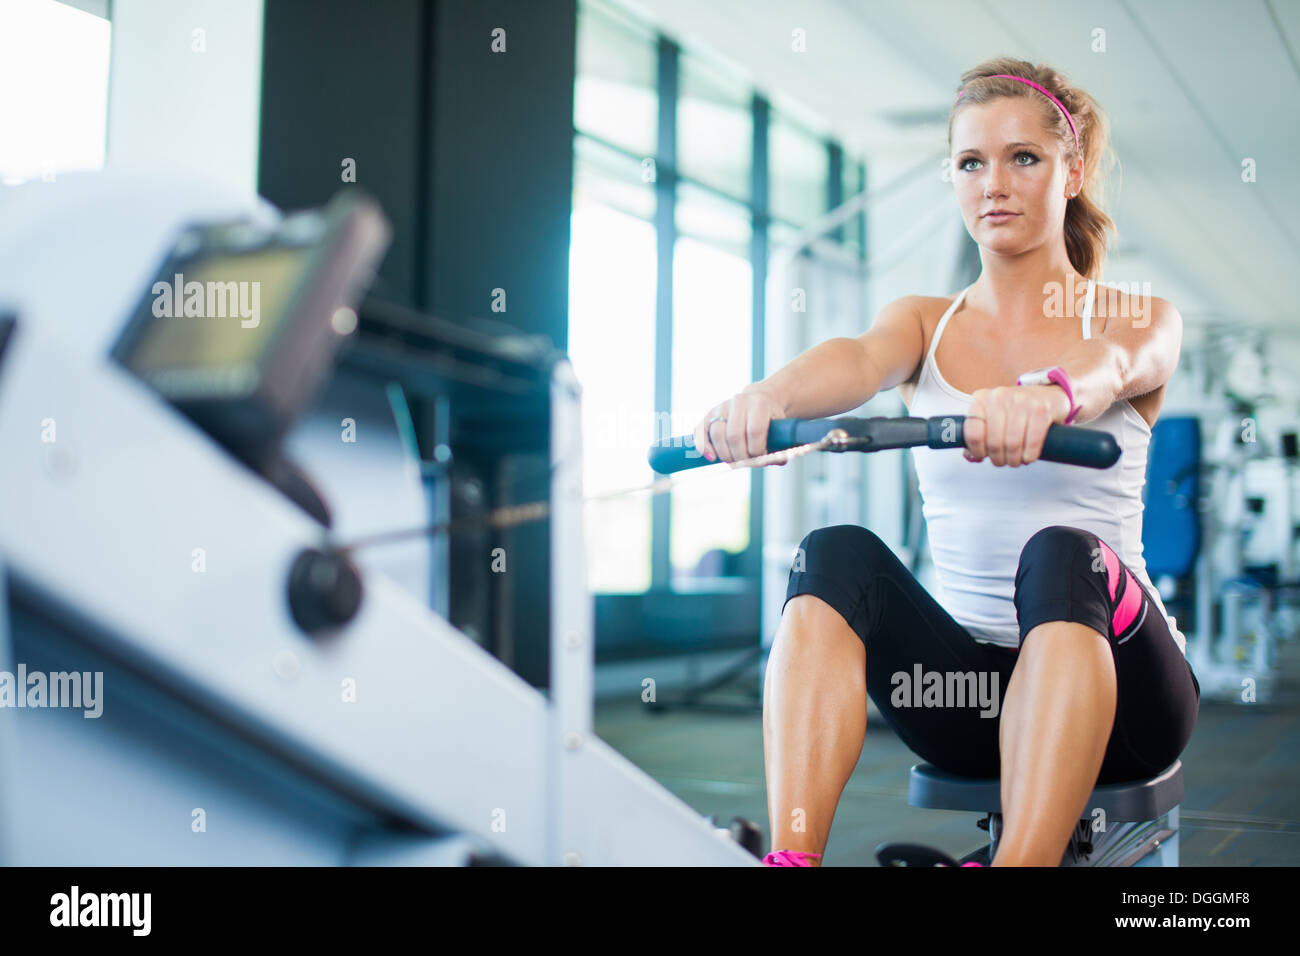 Young woman using rowing machine in gym - Stock Image